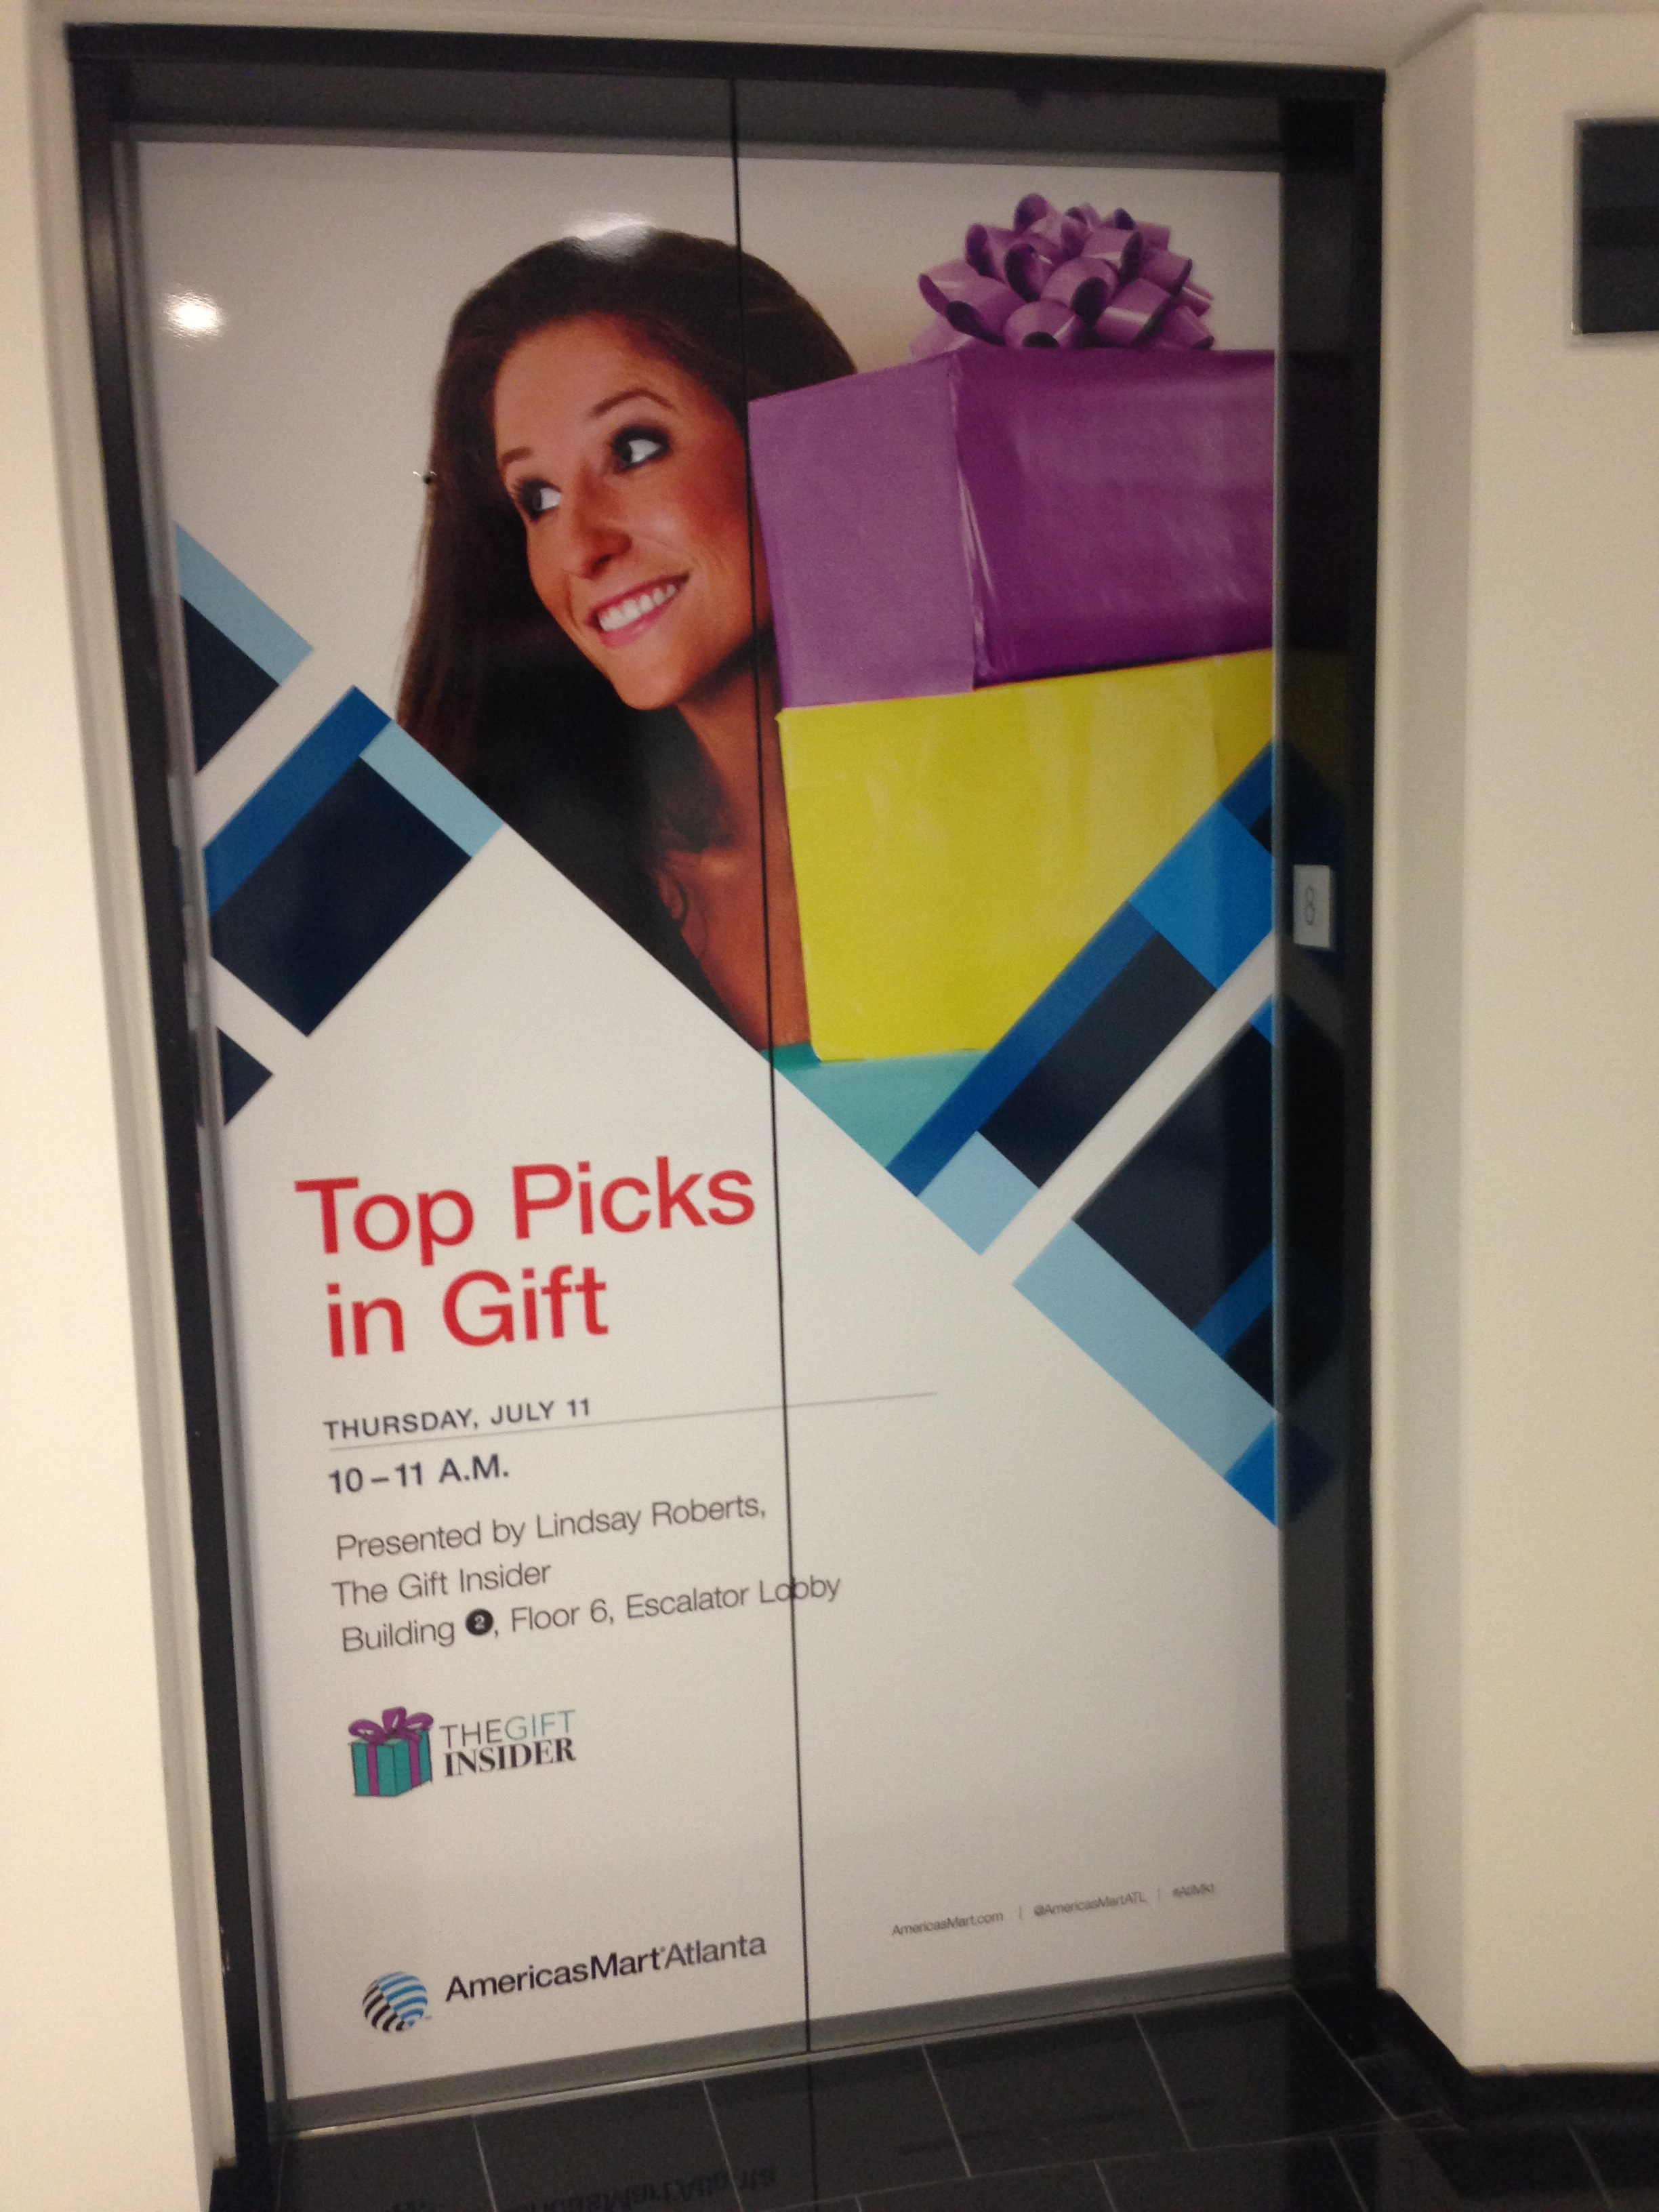 Gift Expert at AmericasMart The Gift Insider